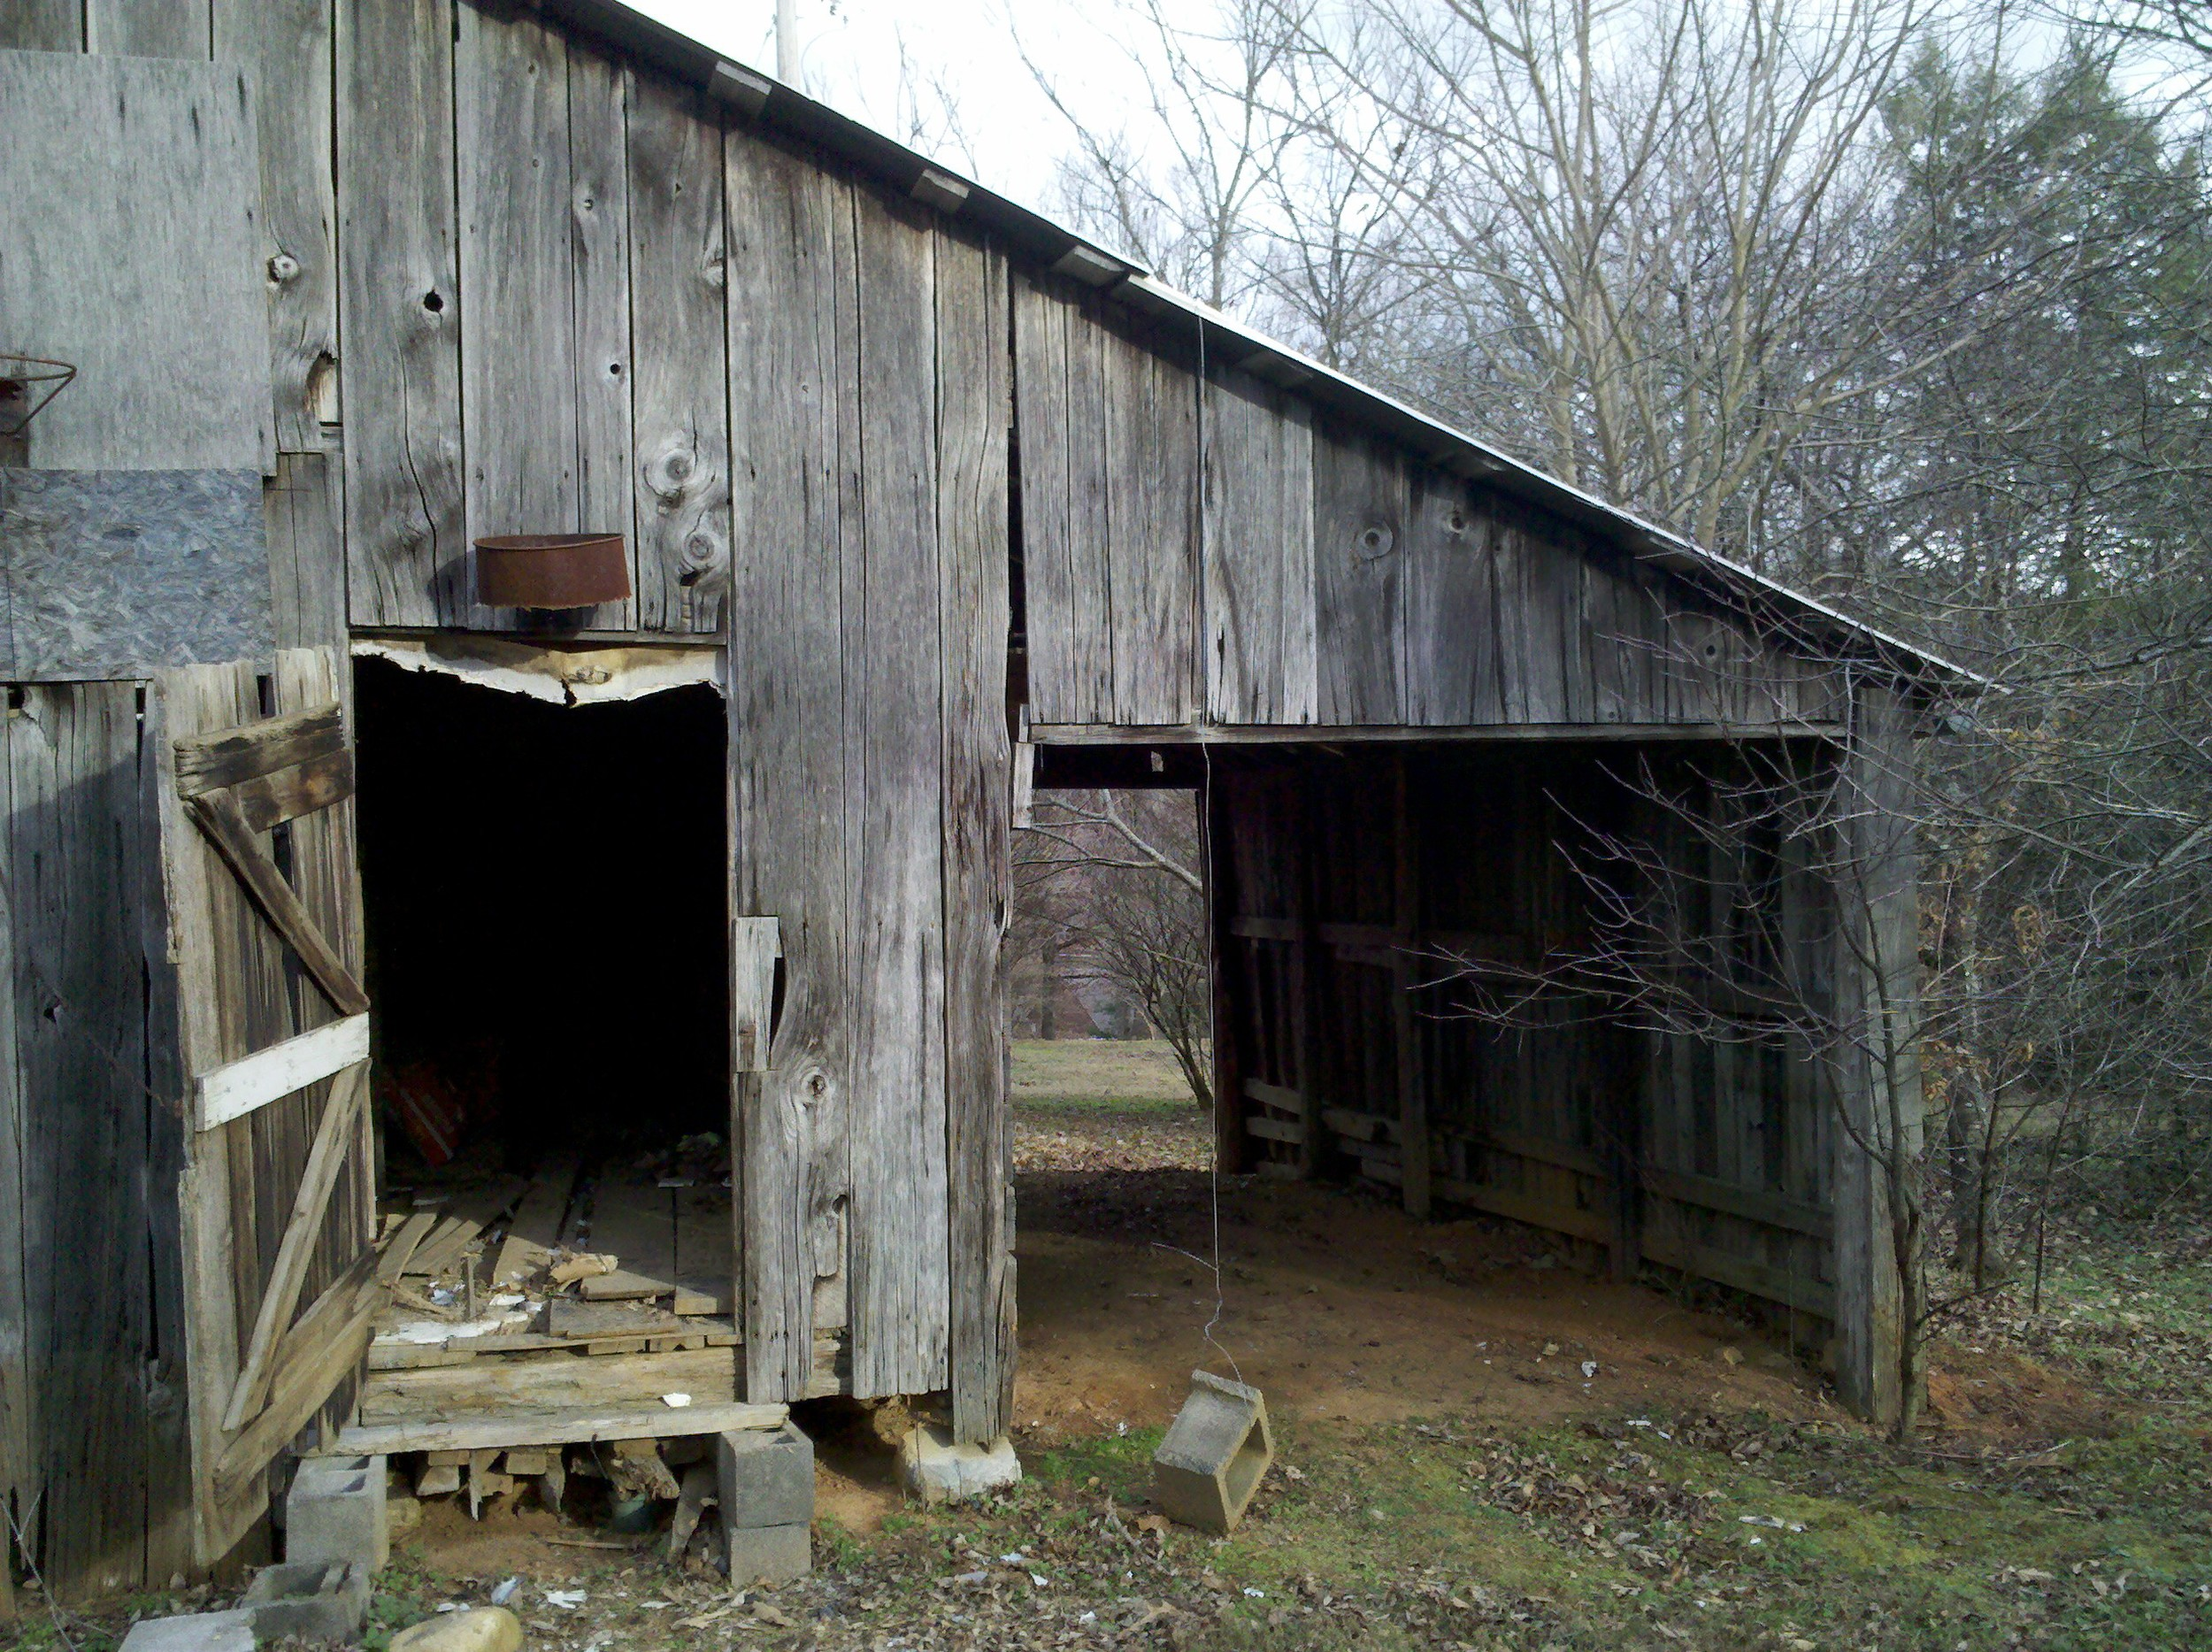 Plenty of great material came out of this barn!